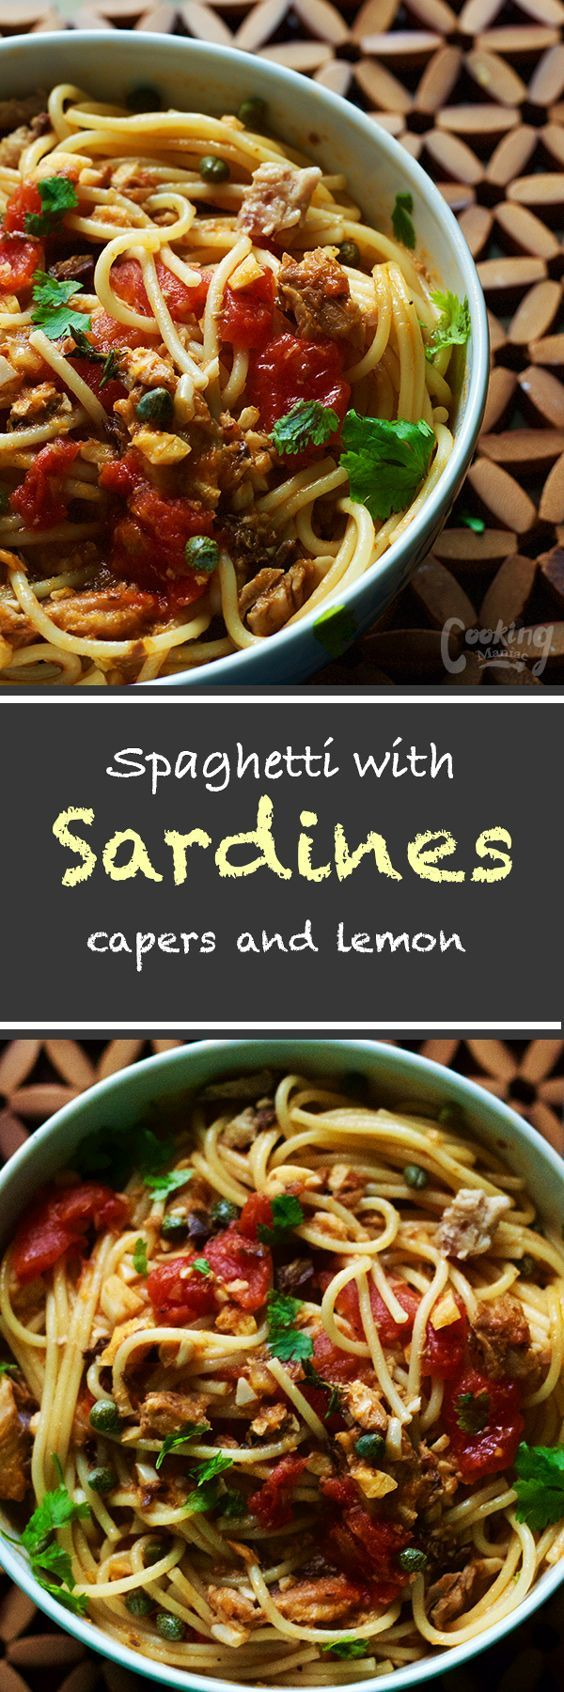 This pasta sauce is filled with everyday pantry essential. This spaghetti with sardines, capers and lemon is super easy to make, nutritious and delicious.: